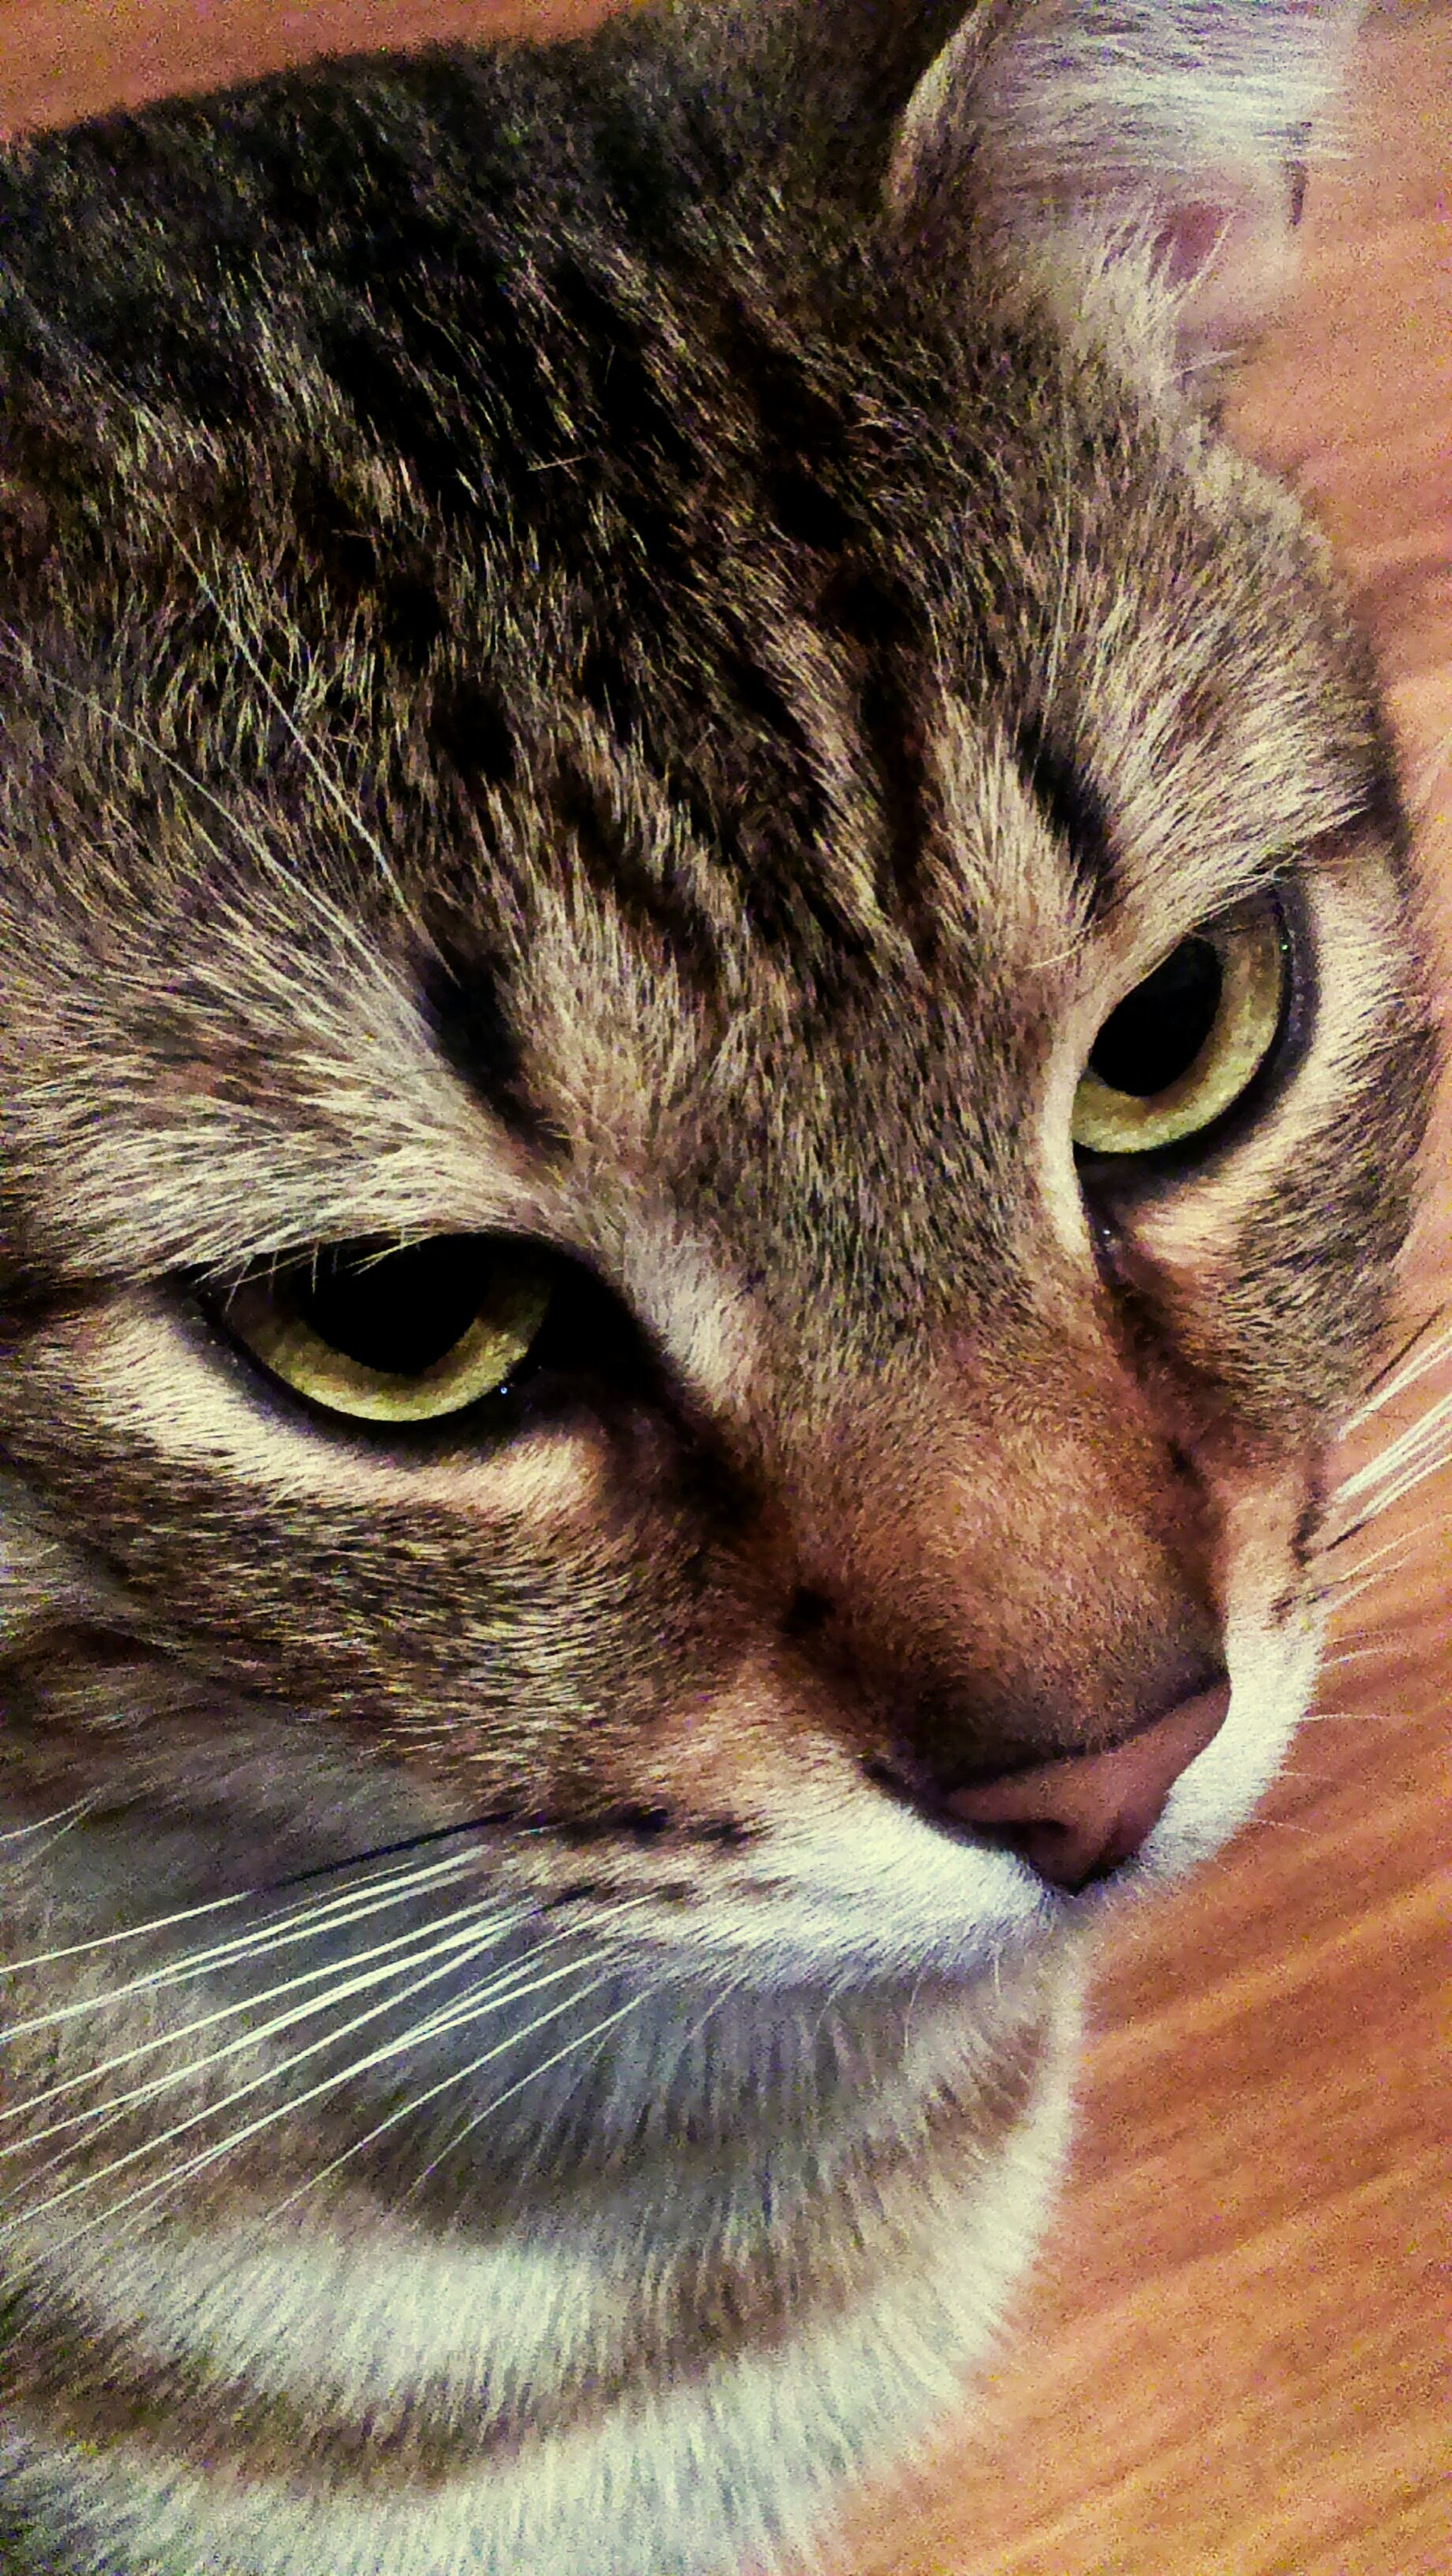 animal themes, one animal, animal head, domestic animals, animal body part, mammal, close-up, pets, indoors, animal eye, portrait, whisker, domestic cat, looking at camera, cat, feline, part of, snout, full frame, no people